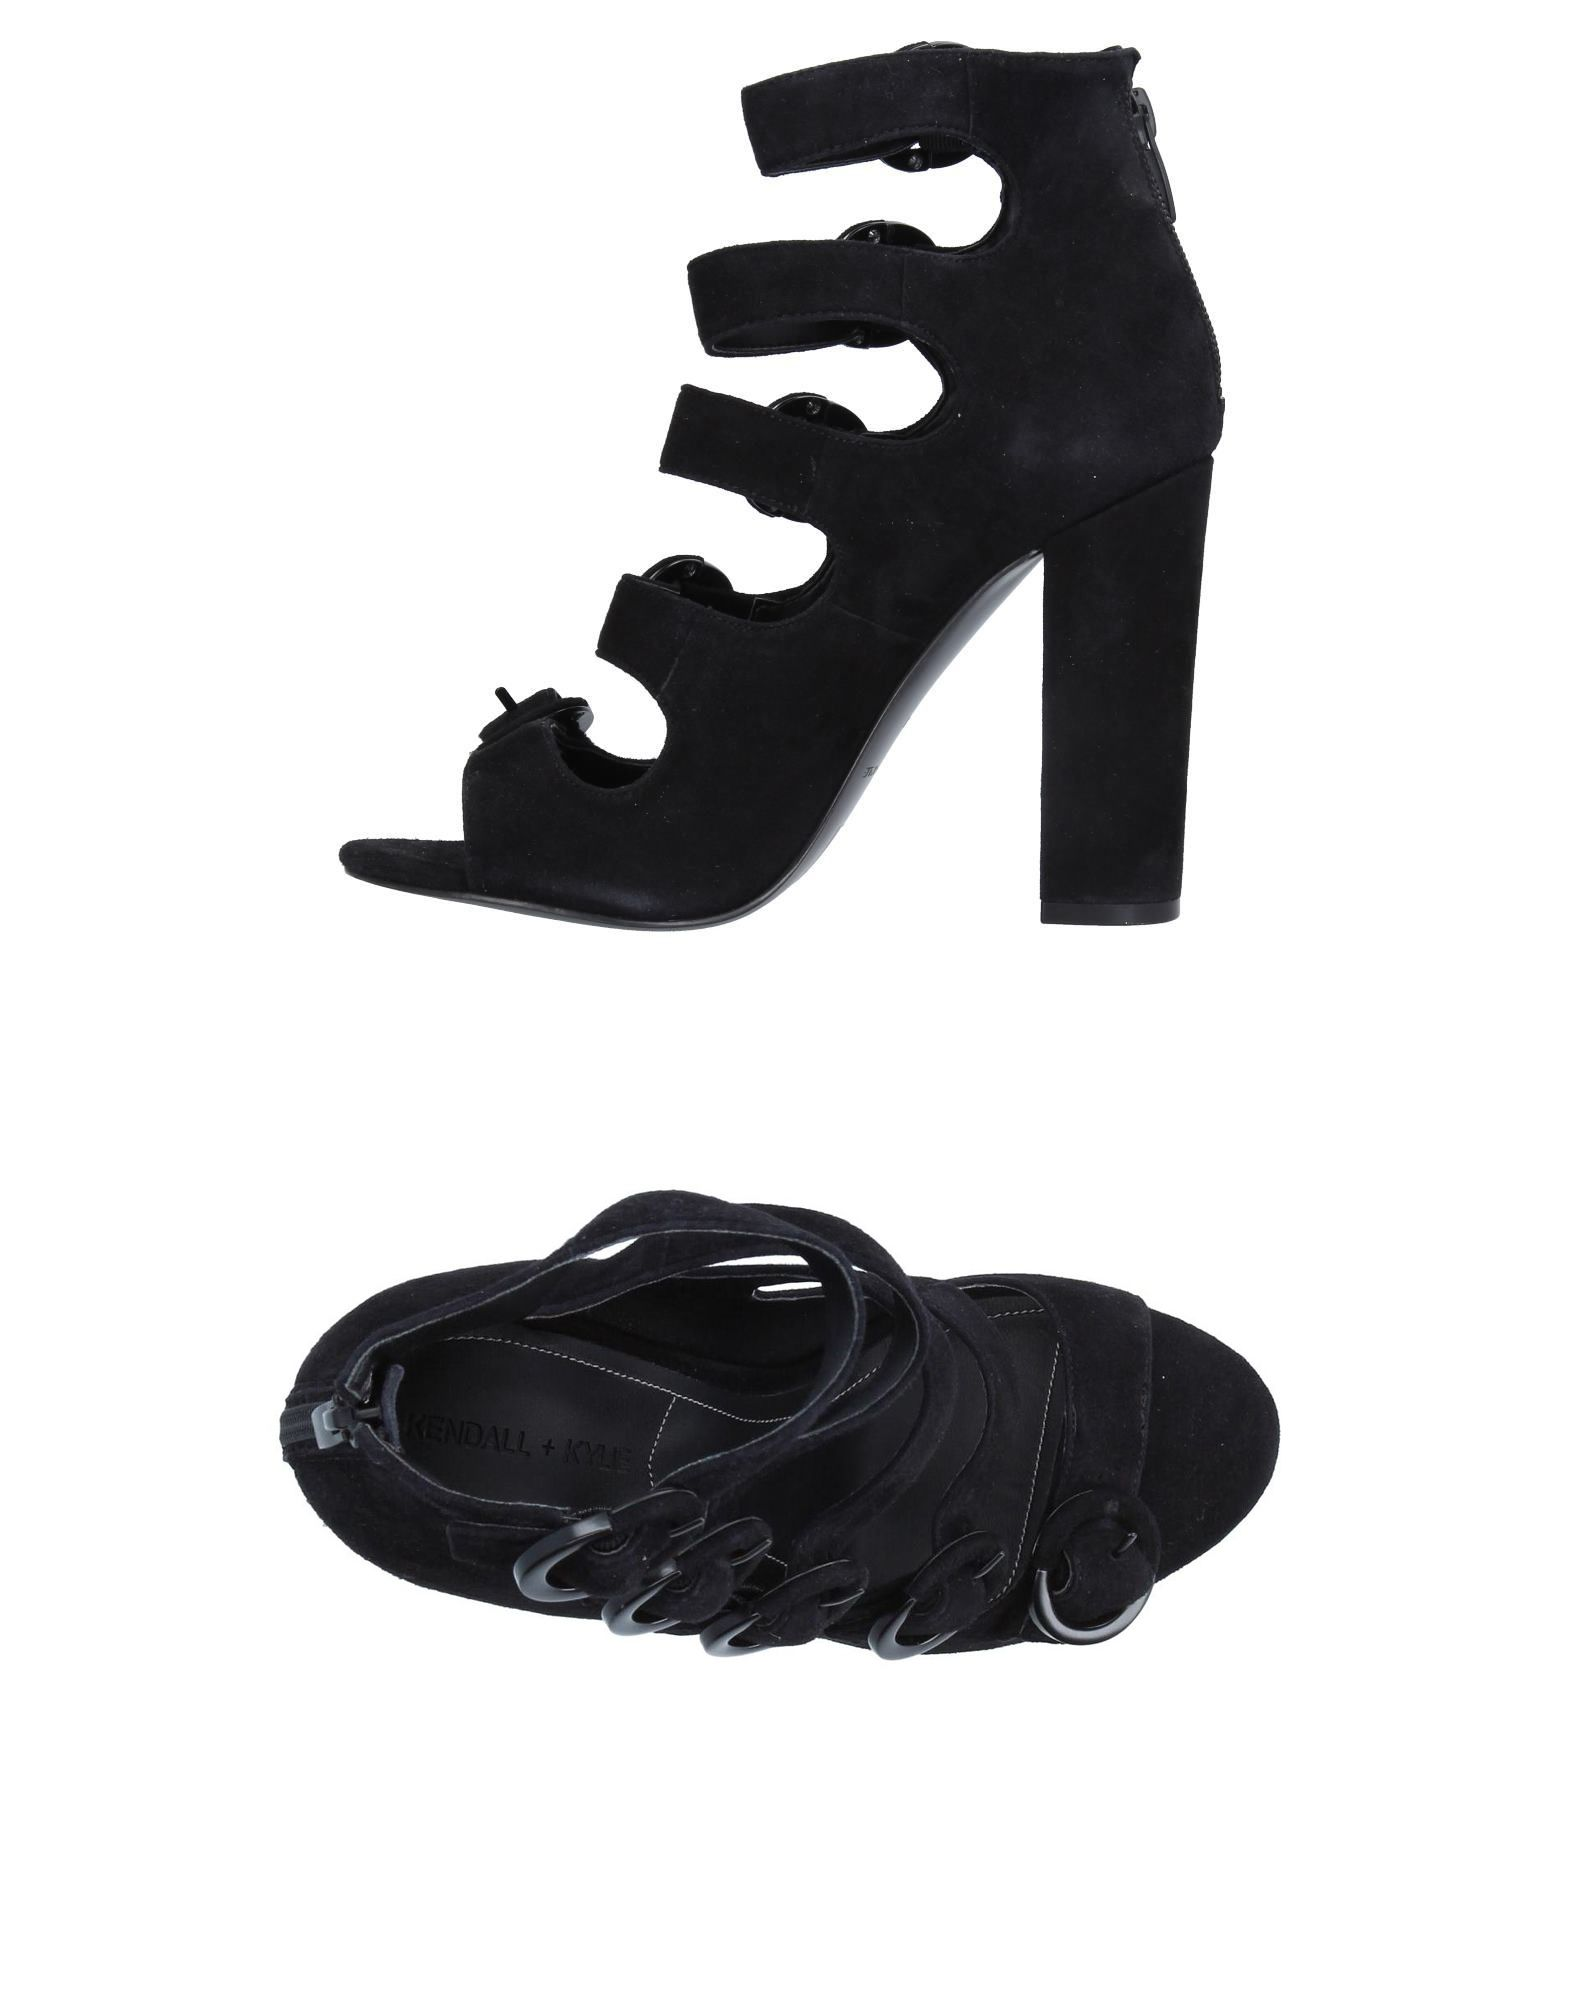 Kendall + Kylie Sandals - Women Kendall + + Kendall Kylie Sandals online on  Australia - 11214426XC 366fb8